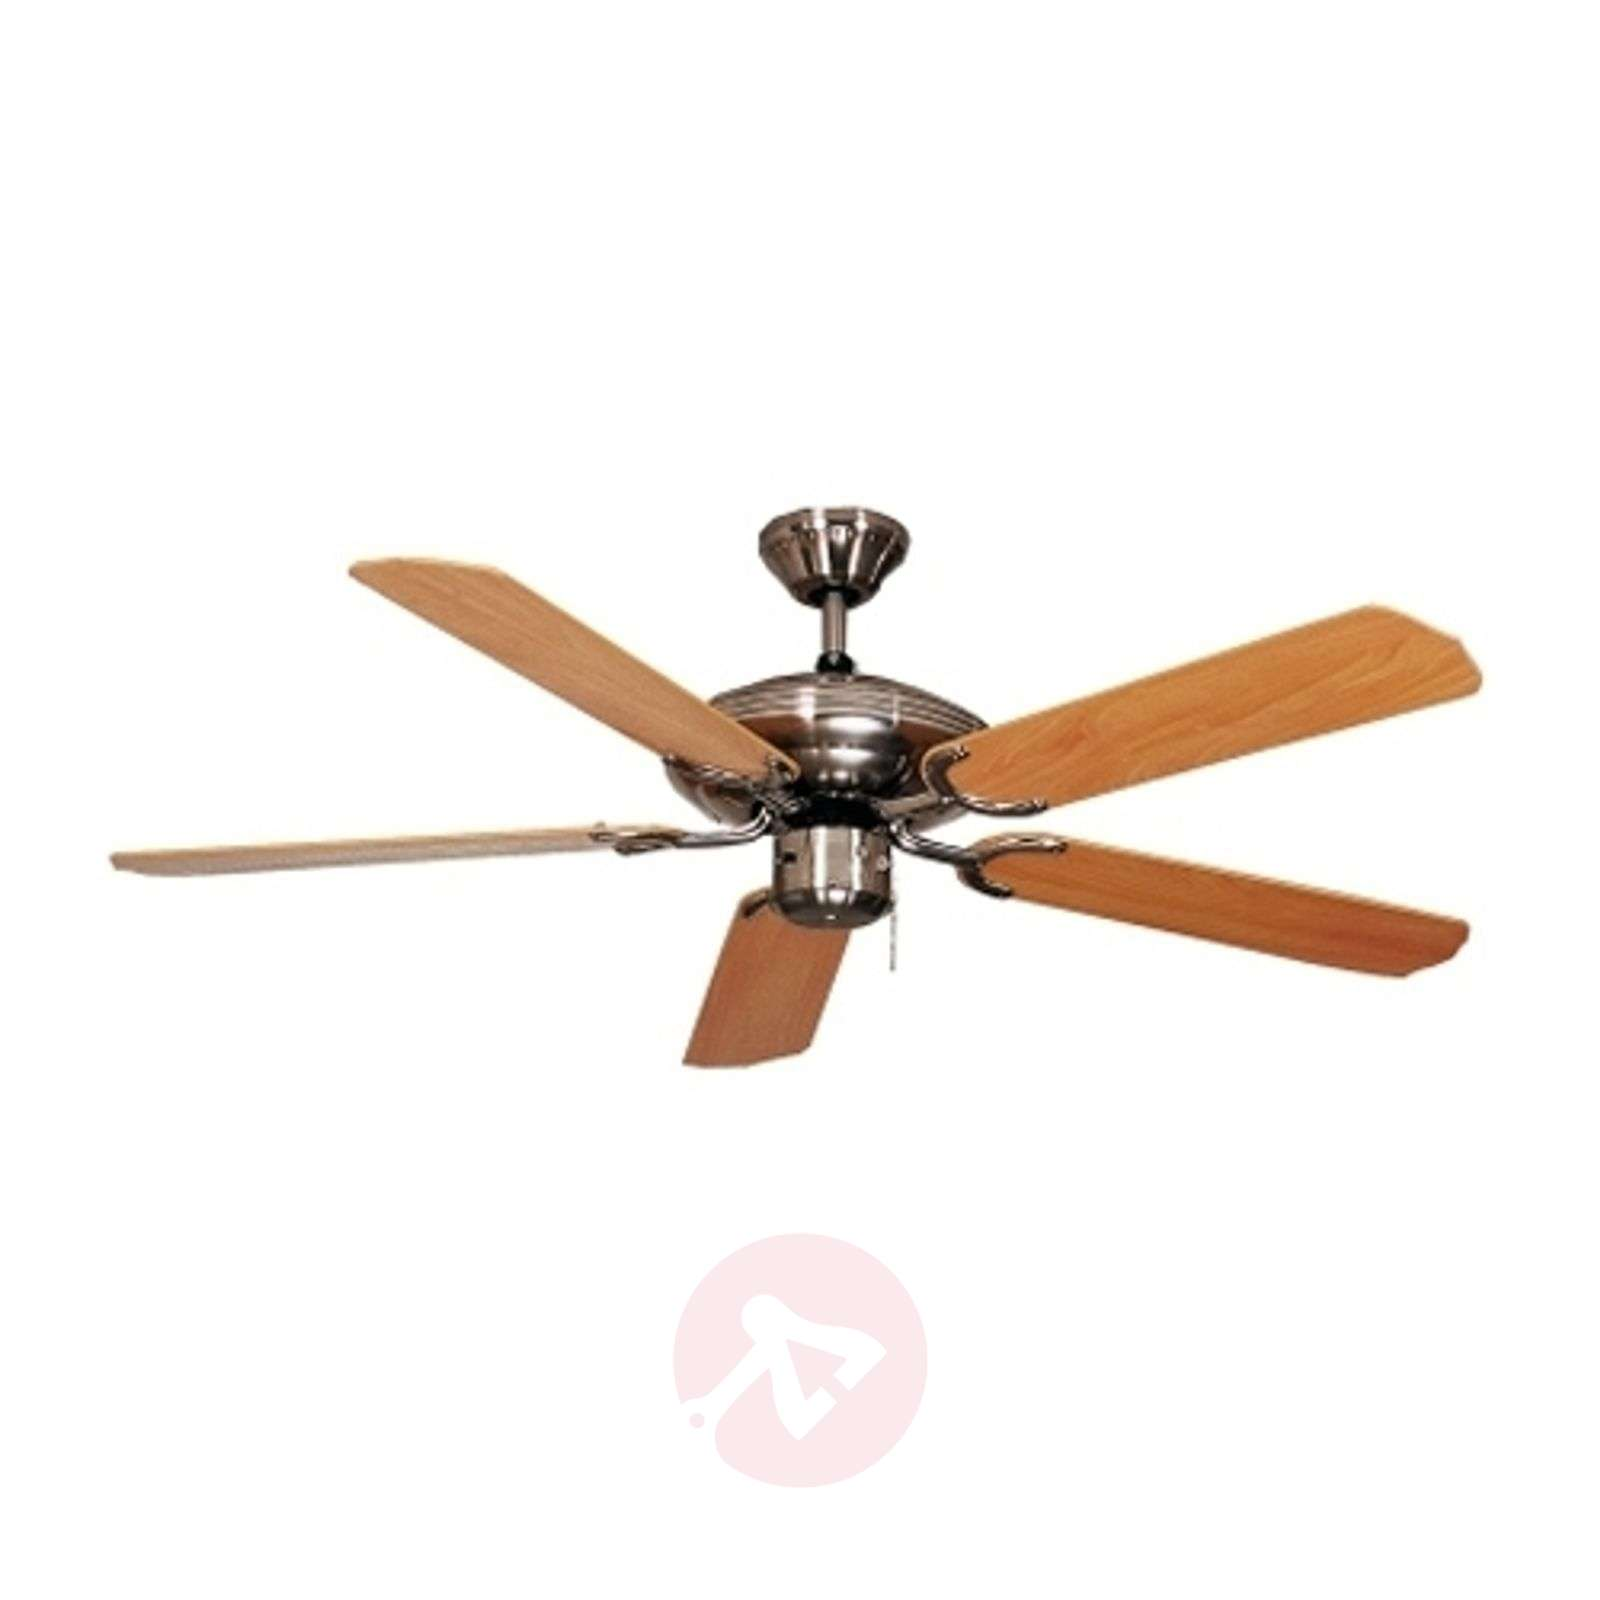 Beech coloured steel star ceiling fan 103 cm lights beech coloured steel star ceiling fan 103 cm 2513024 01 aloadofball Gallery